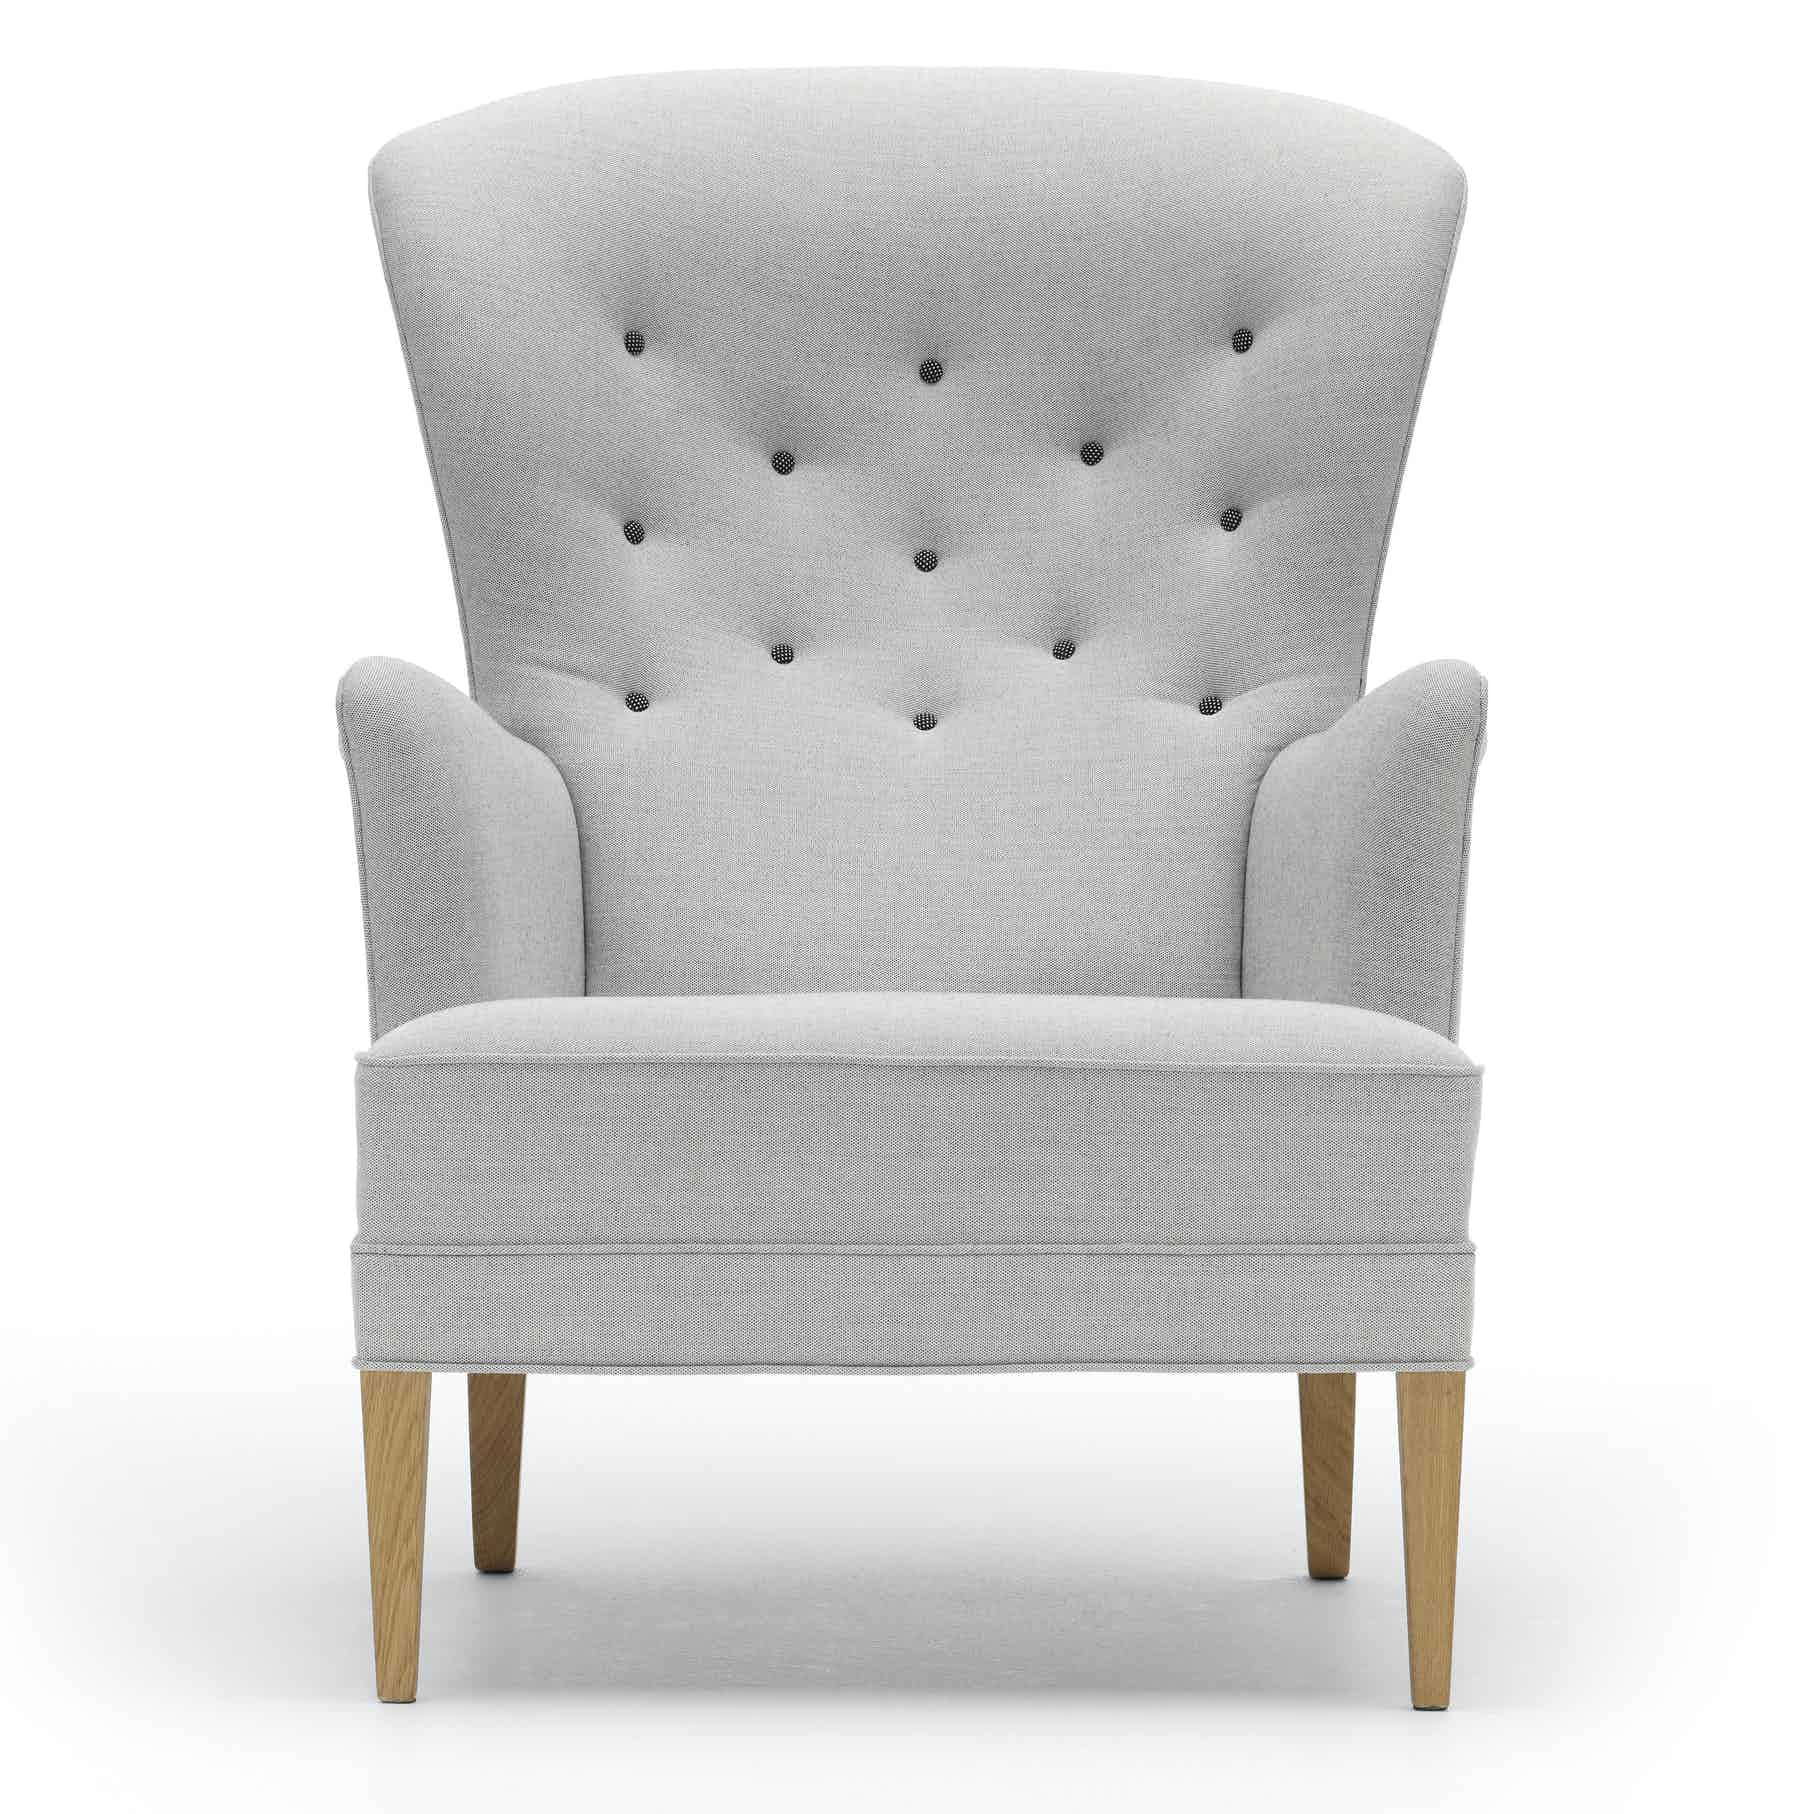 Carl-hansen-son-grey-front-fh419-haute-living